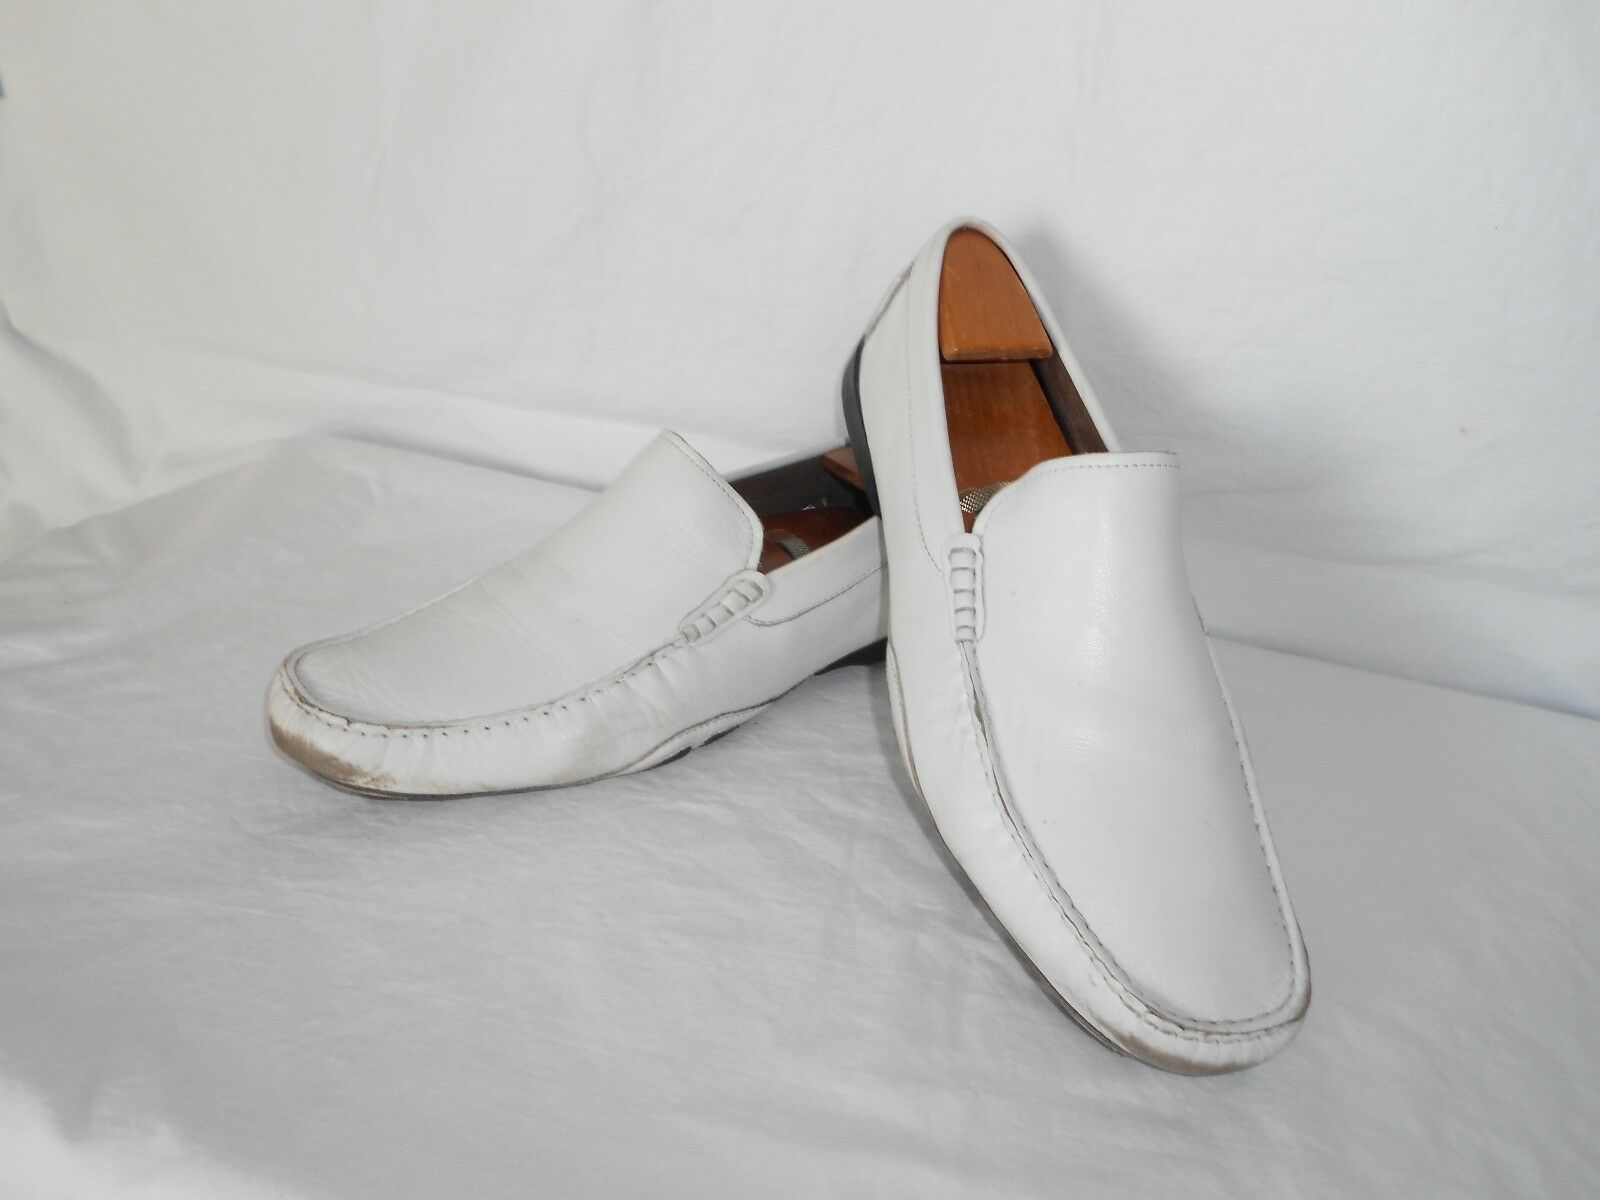 Men's Kenneth Cole Drive Home White Leather Casual Drivers Loafers Size 9.5 D